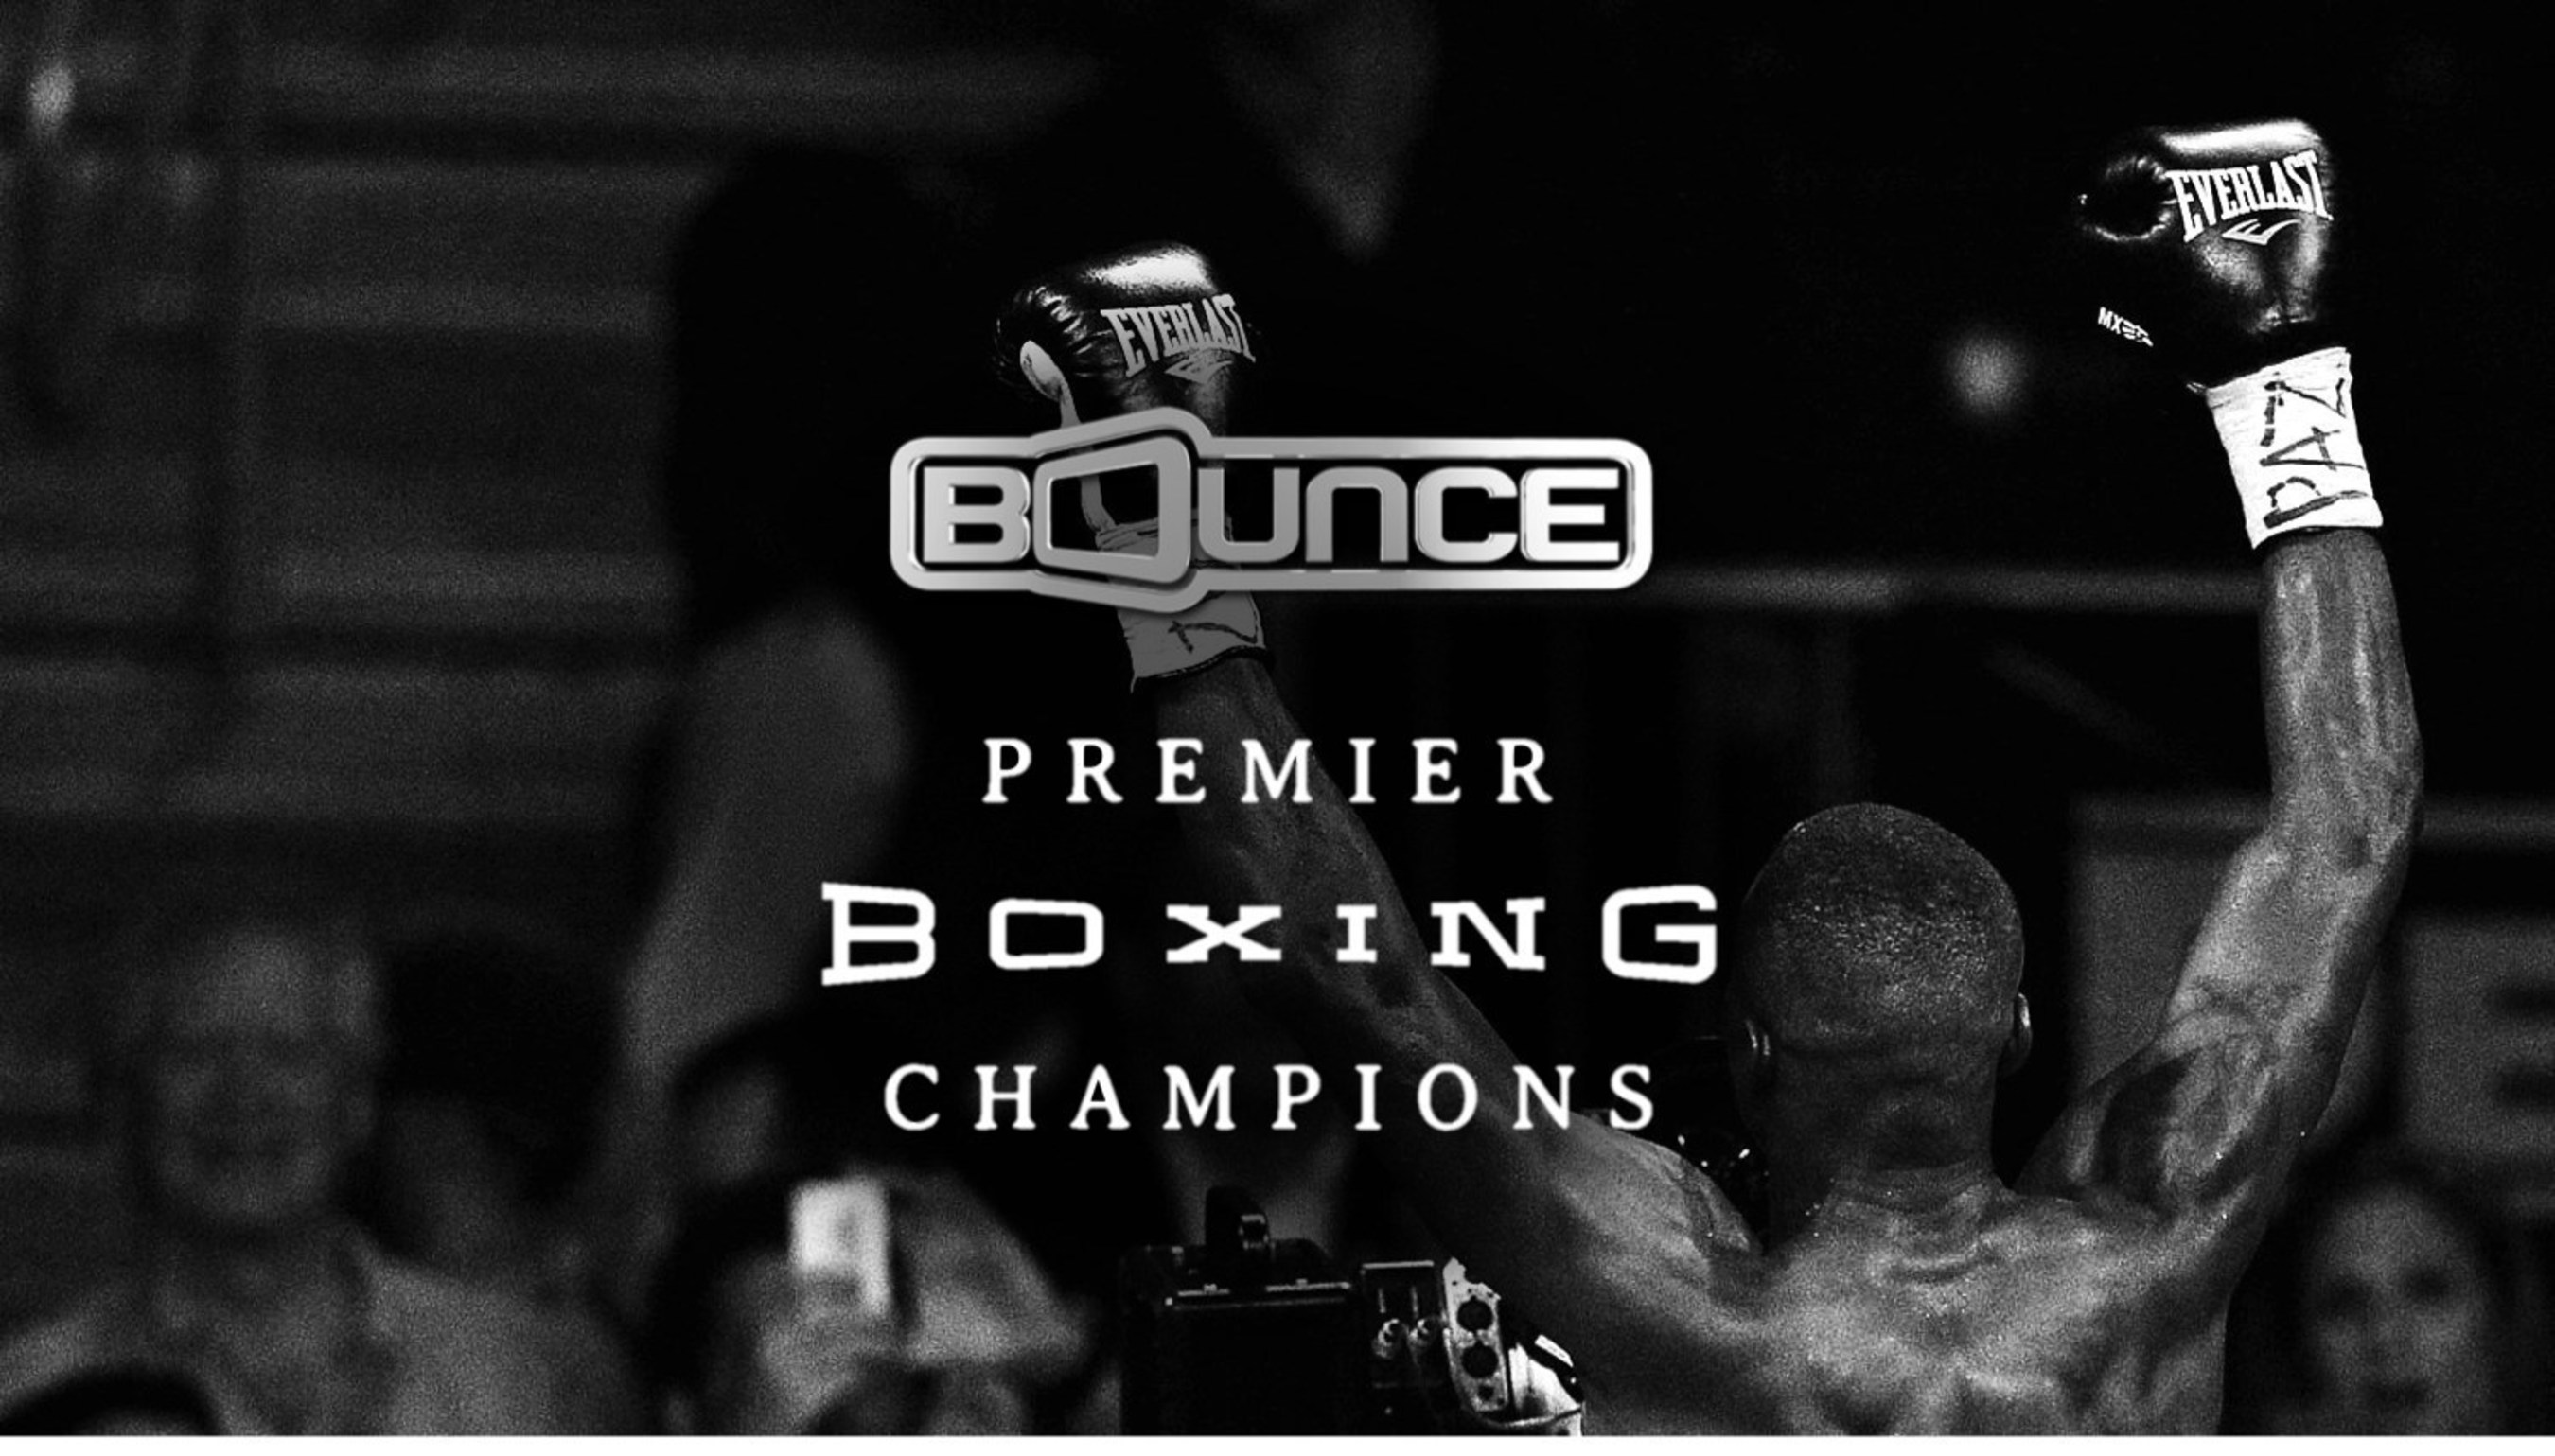 Premier Boxing Champions (PBC) comes to Bounce TV on Sunday, August 2 at 9:00 p.m. (ET), with the debut of the new monthly series, PBC - The Next Round, which will showcase the sport's future stars and potential champions.  Bounce TV is free on the digital broadcast signals of local television stations and corresponding cable carriage.